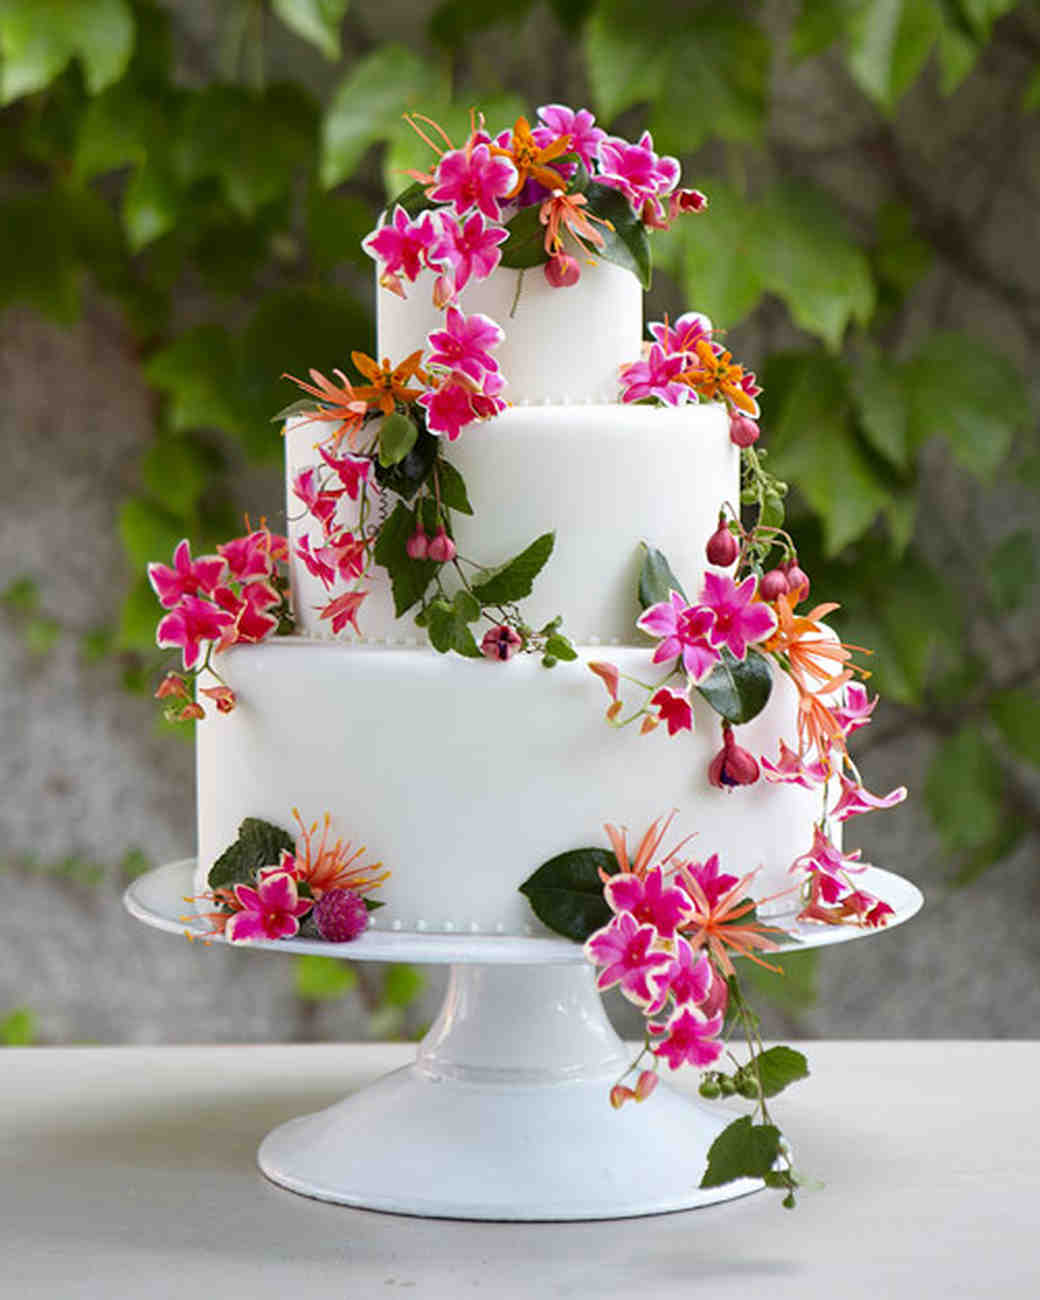 Wedding Cakes With Flowers On Top: Flowers For Every Element Of Your Wedding